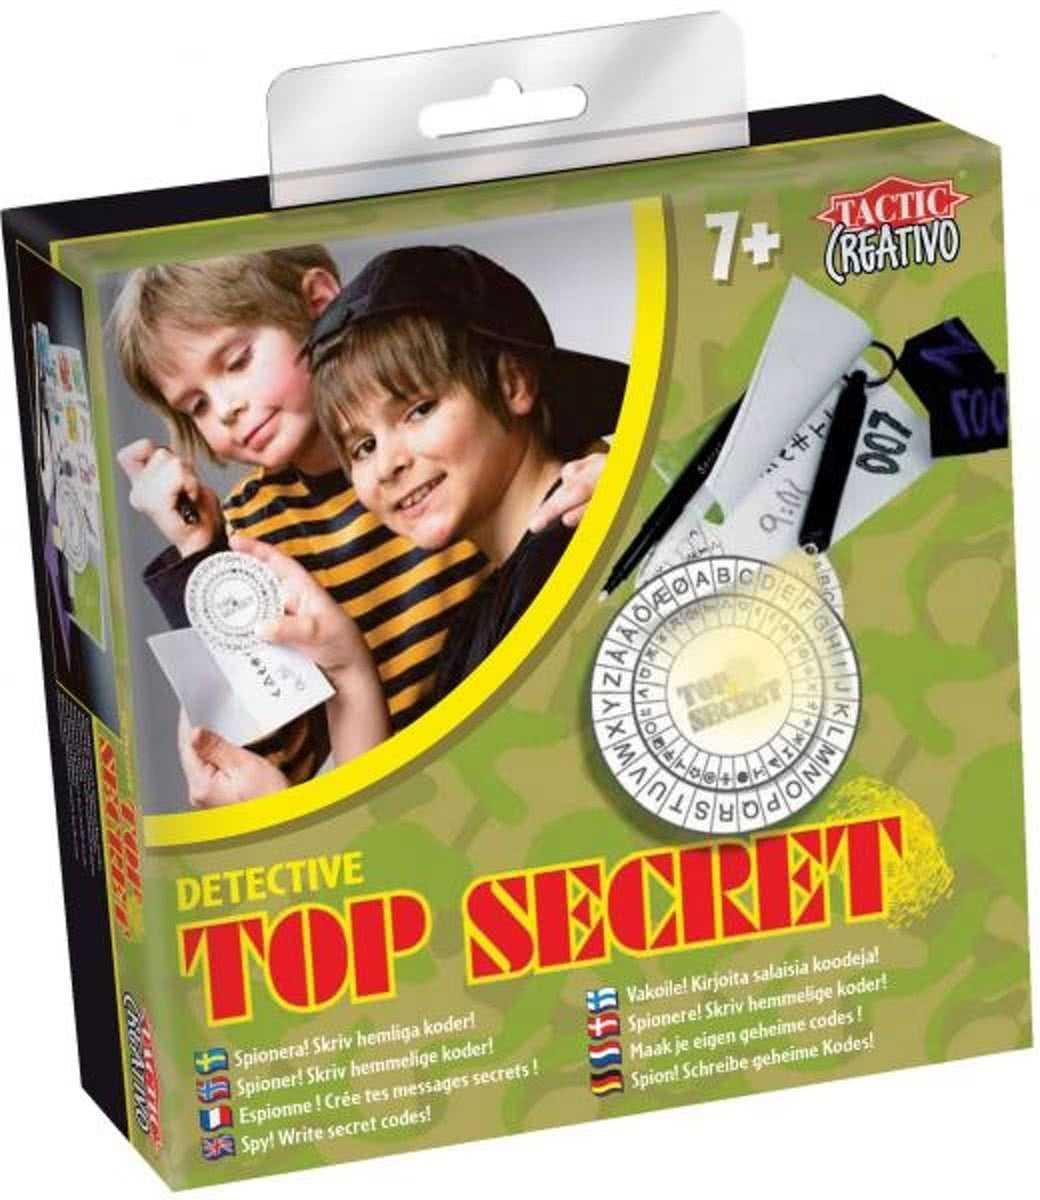 Top secret - Educatief spel